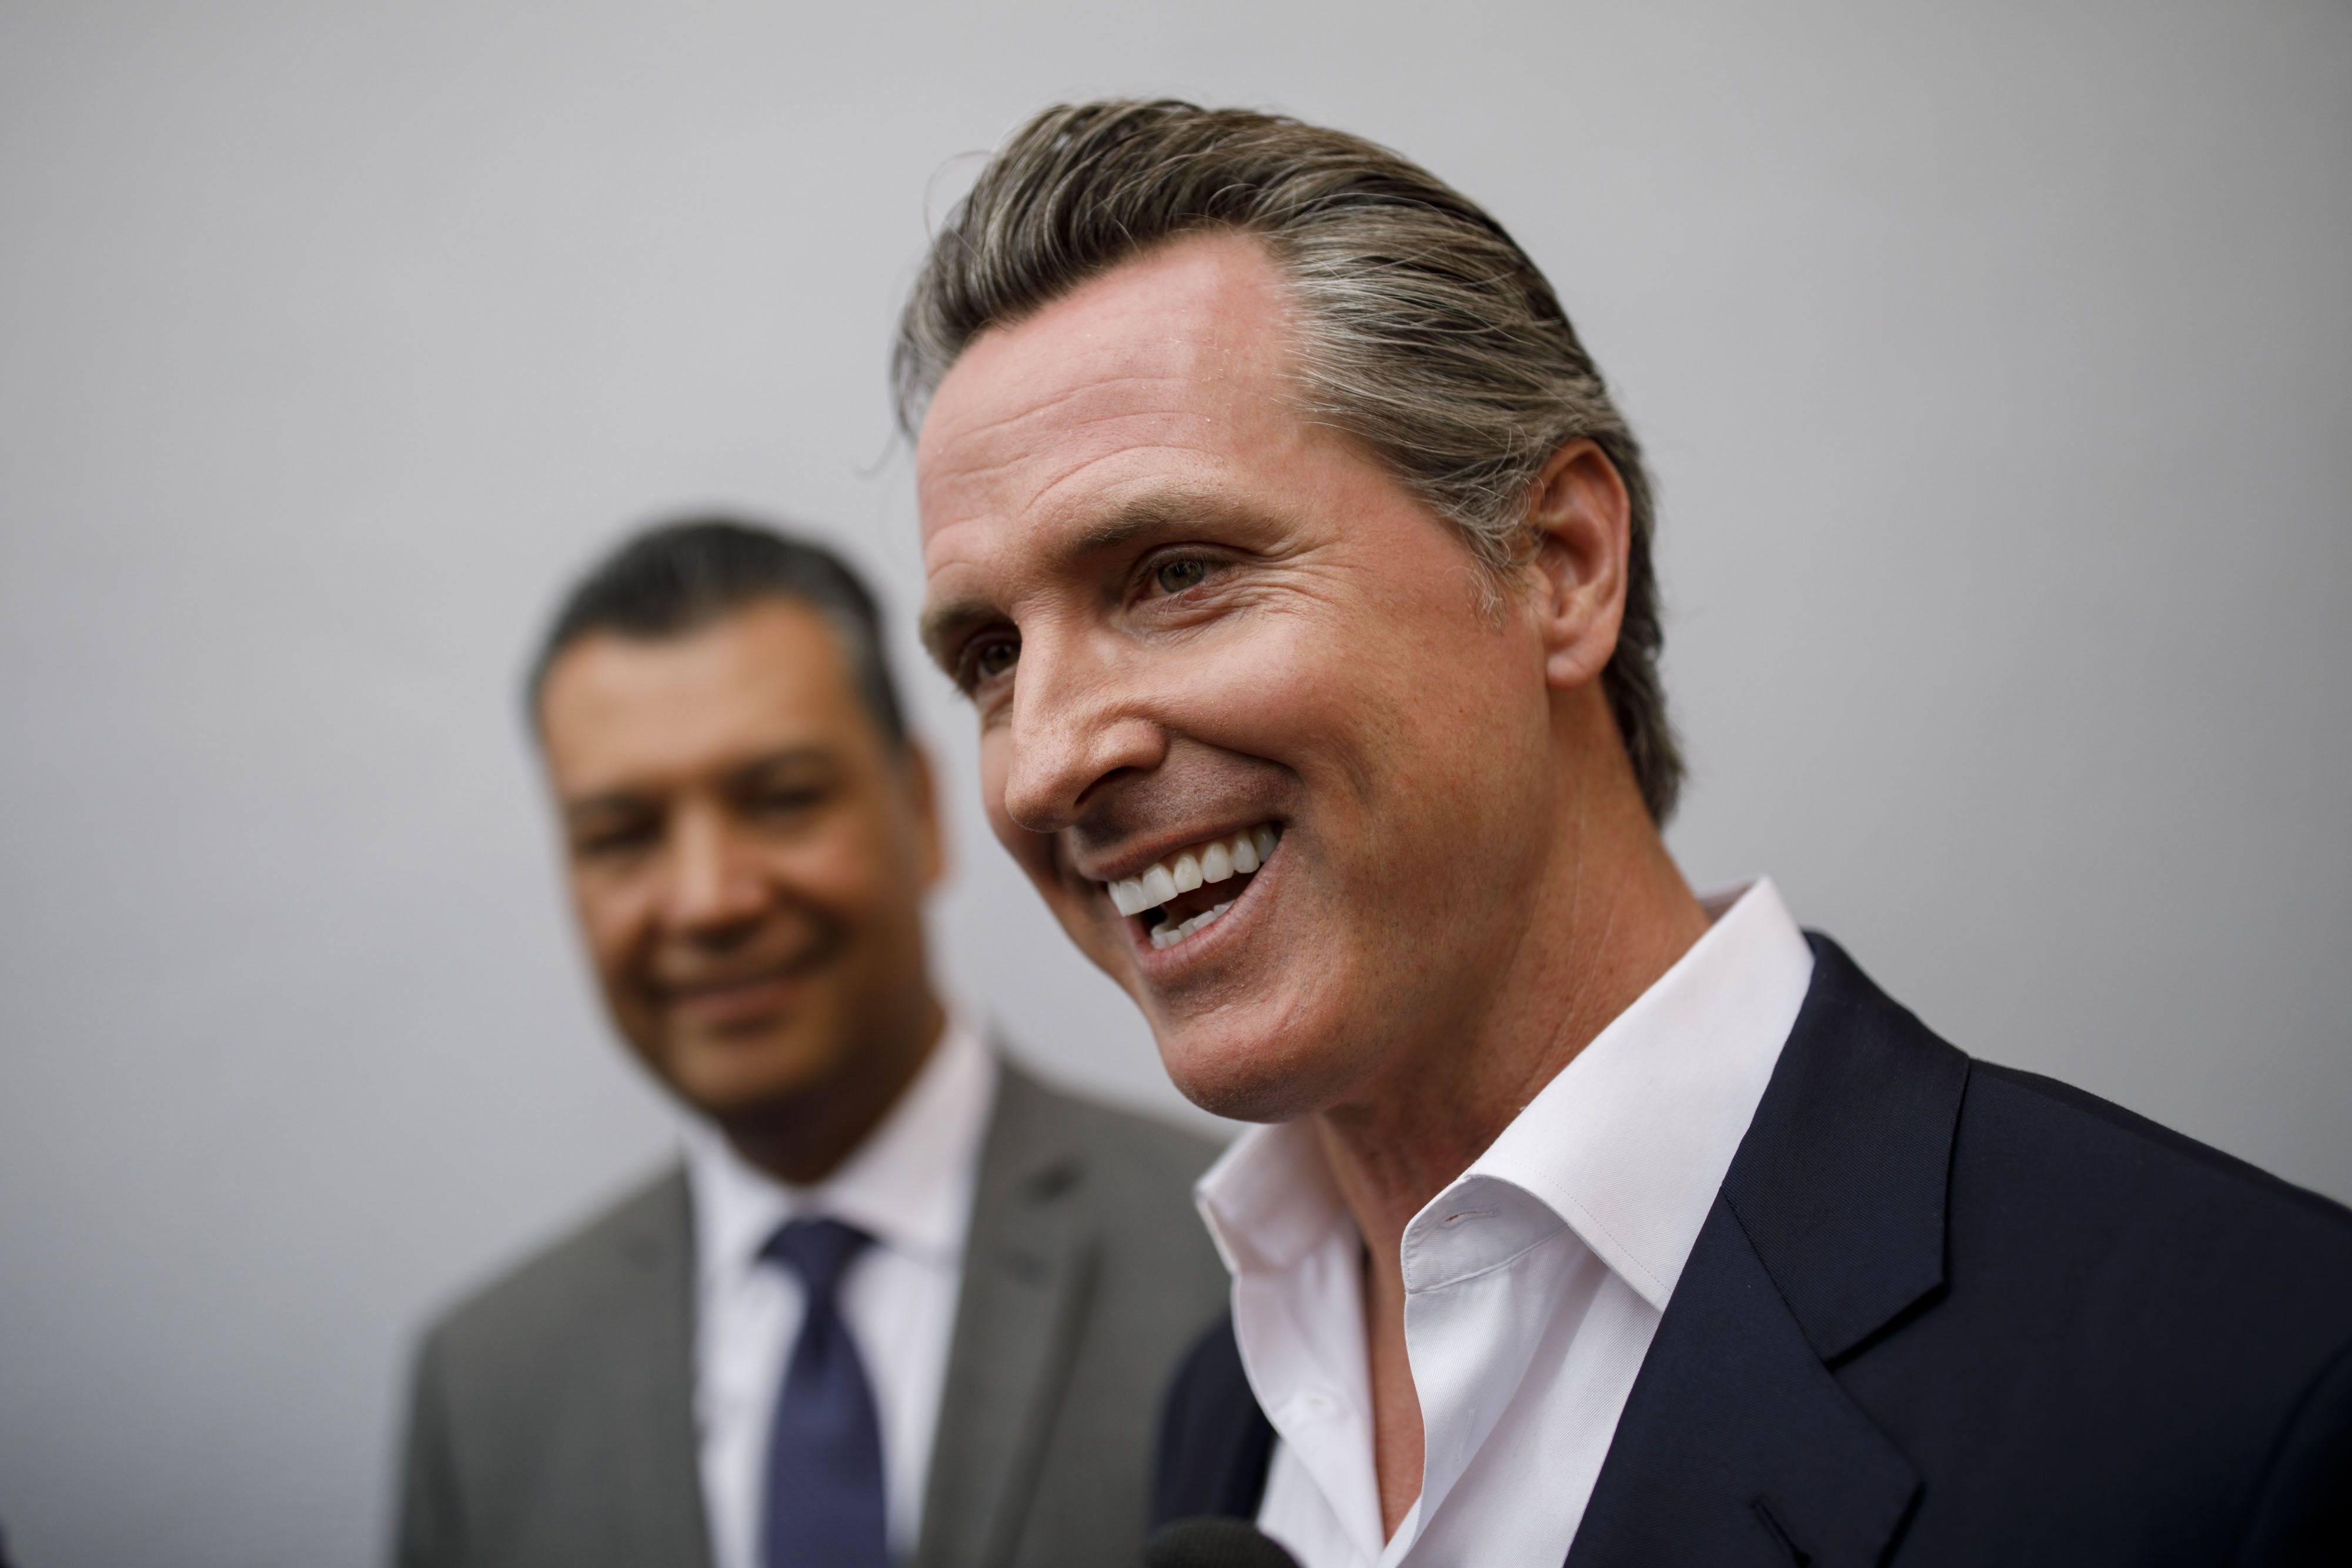 California Lt. Gov. Gavin Newsom (D), a former mayor of San Francisco, is the odds-on favorite to become governor.